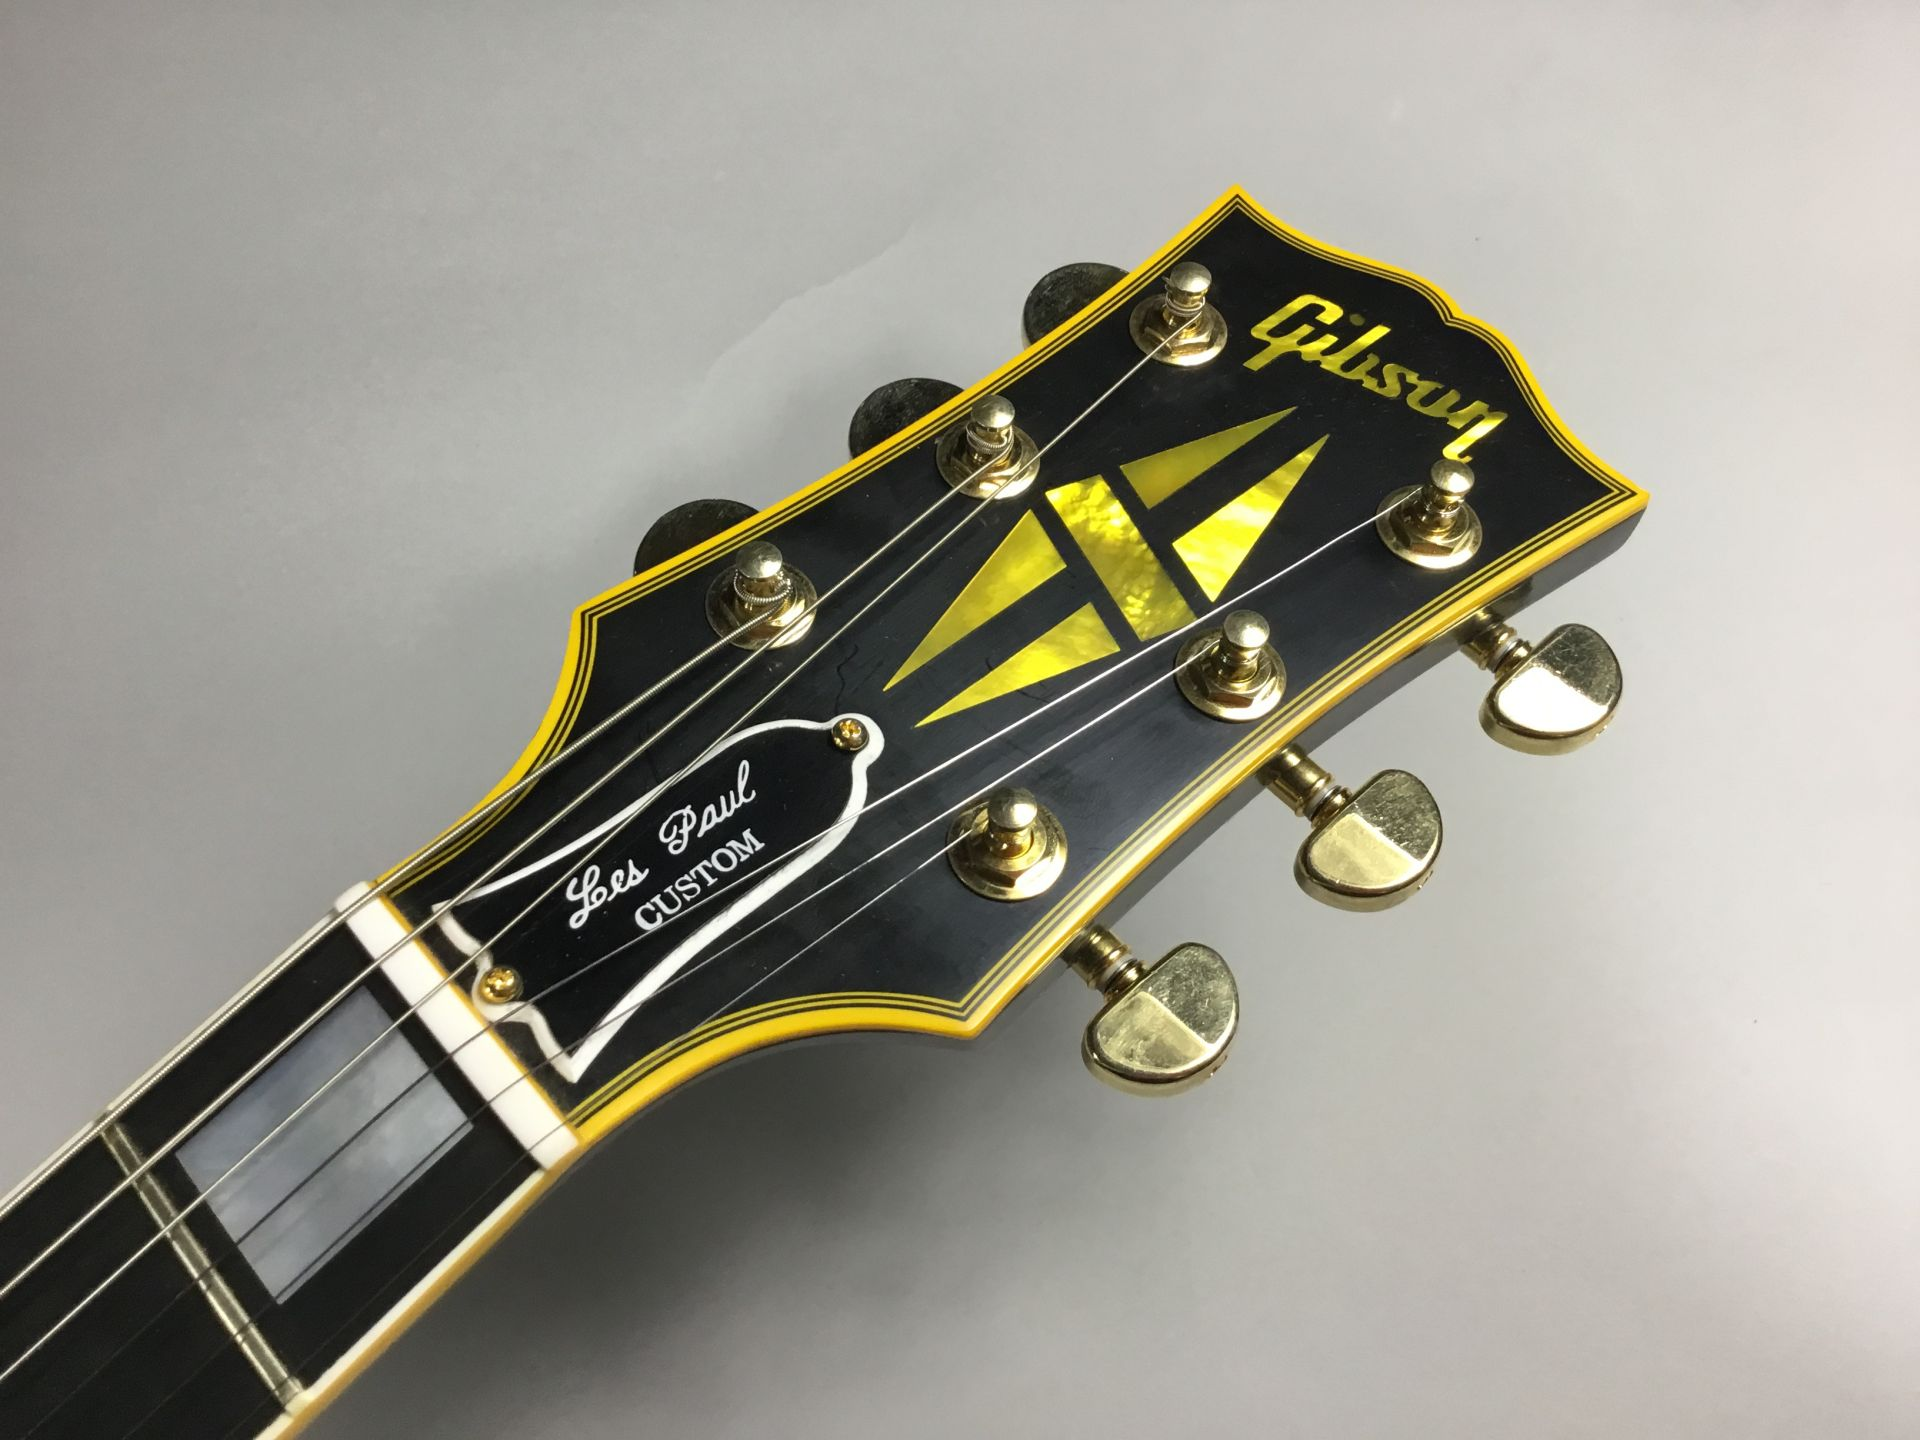 Les Paul Custom VOS Antique Ebony 1968仕様のヘッド画像